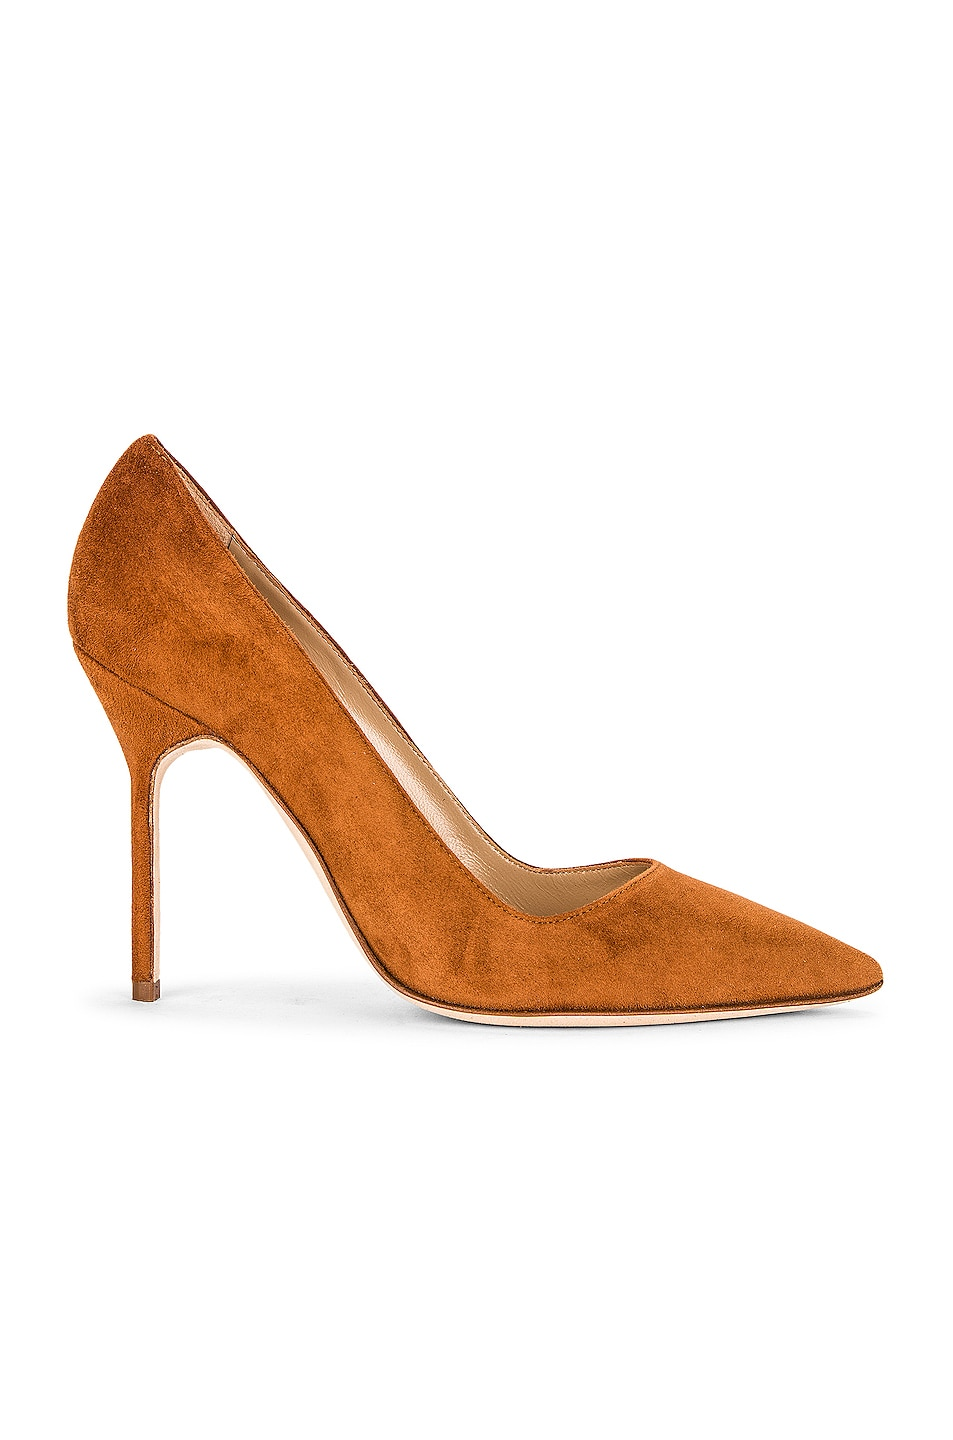 Image 1 of Manolo Blahnik BB 105 Suede Heel in Brown